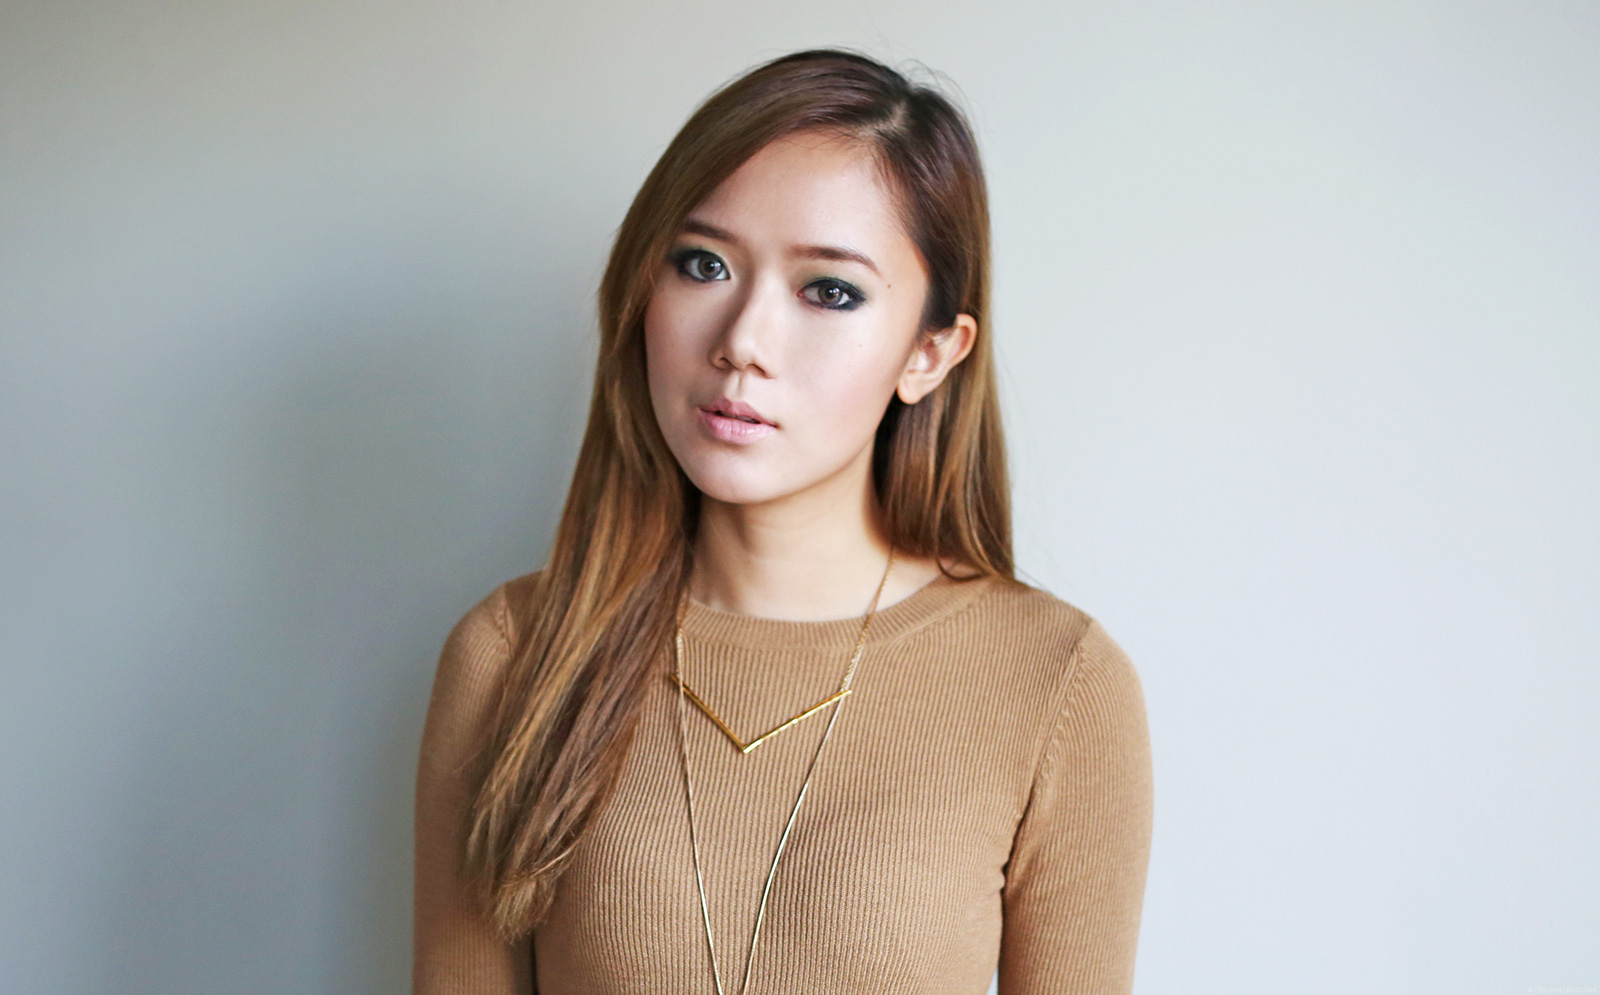 Green Smokey Eye Makeup + Contour Tutorial | www.itscamilleco.com